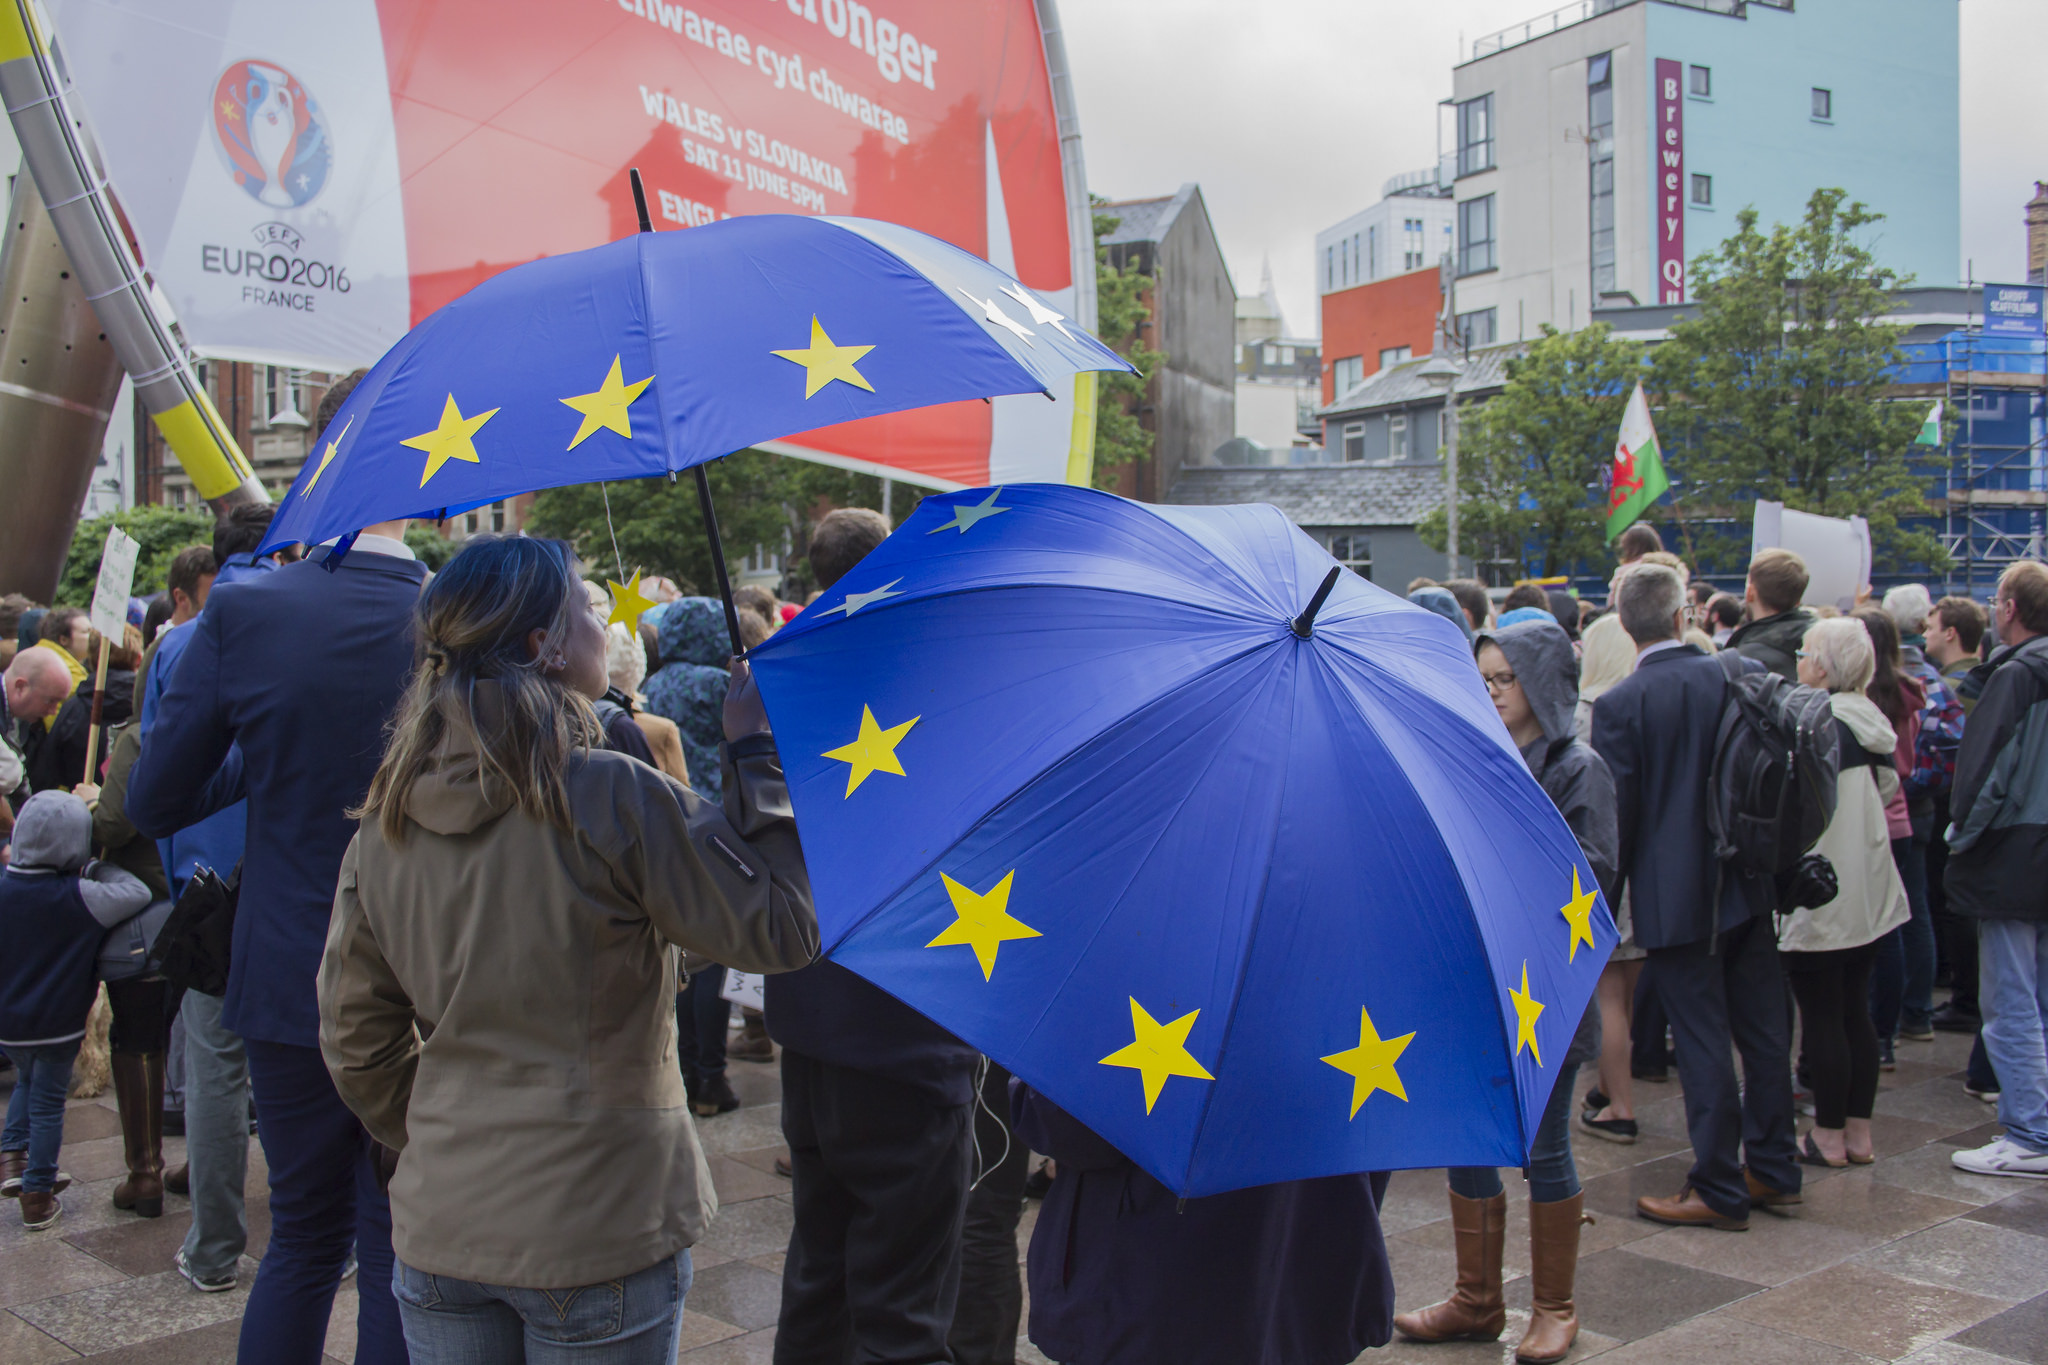 A pair of ladies holding two EU umbrellas in a crowd